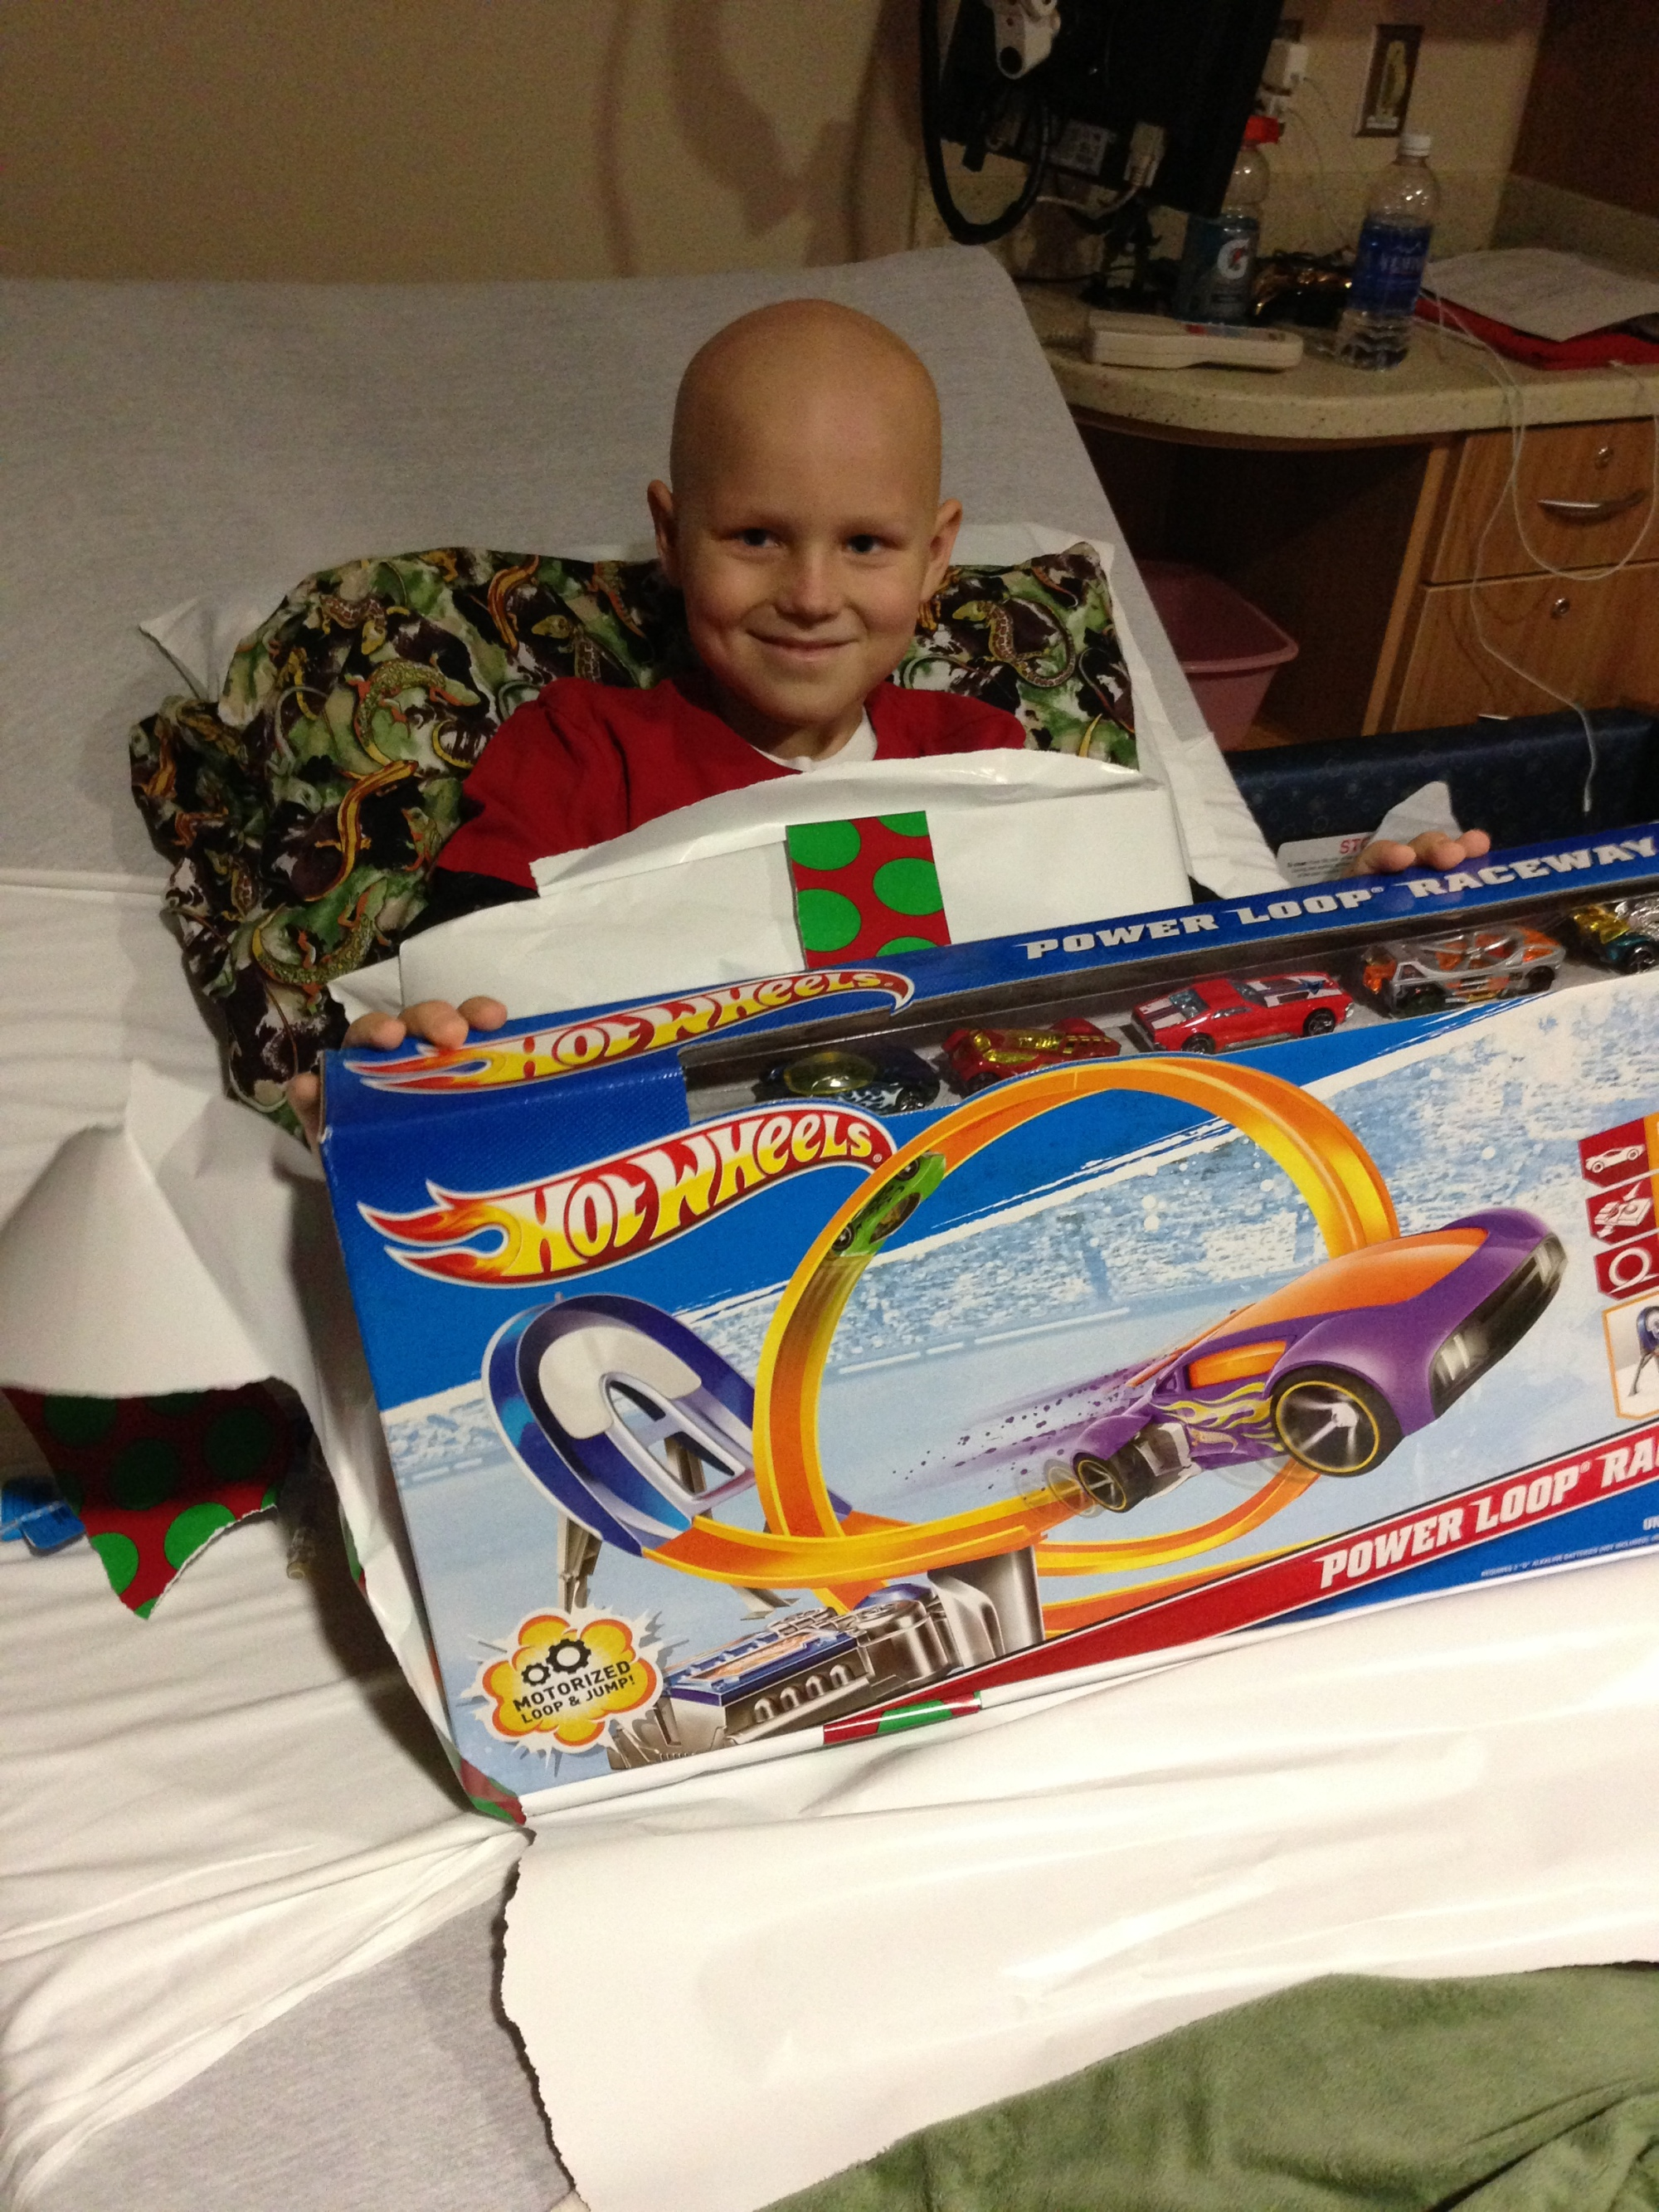 "Sent in by Amber Alder - ""Merry Christmas from Arkansas Children's Hospital!"""